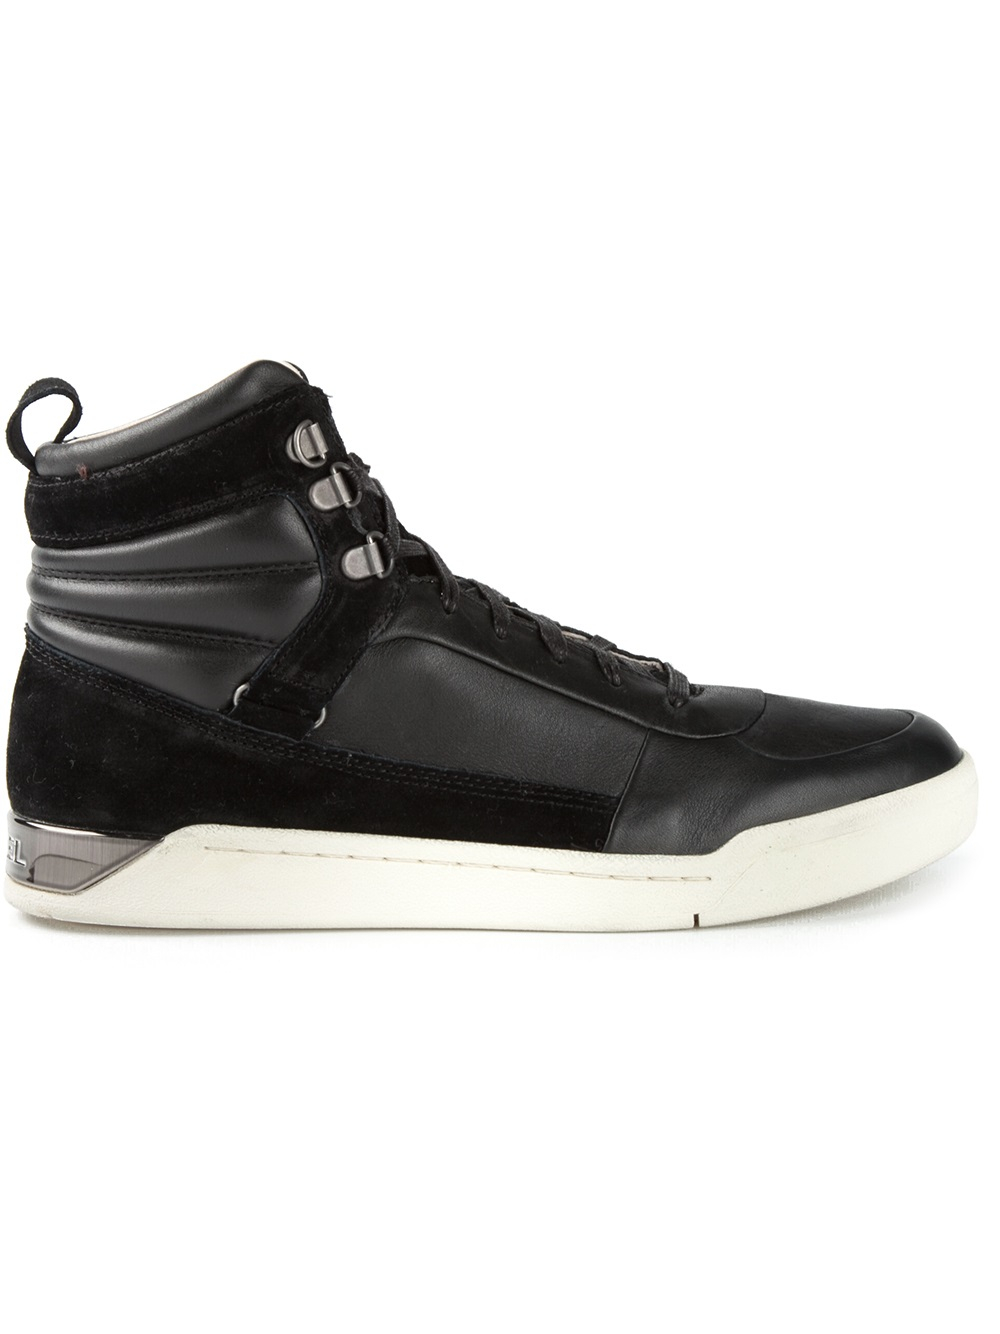 DIESEL 'Onice' Hi-Top Sneakers in Black for Men - Lyst